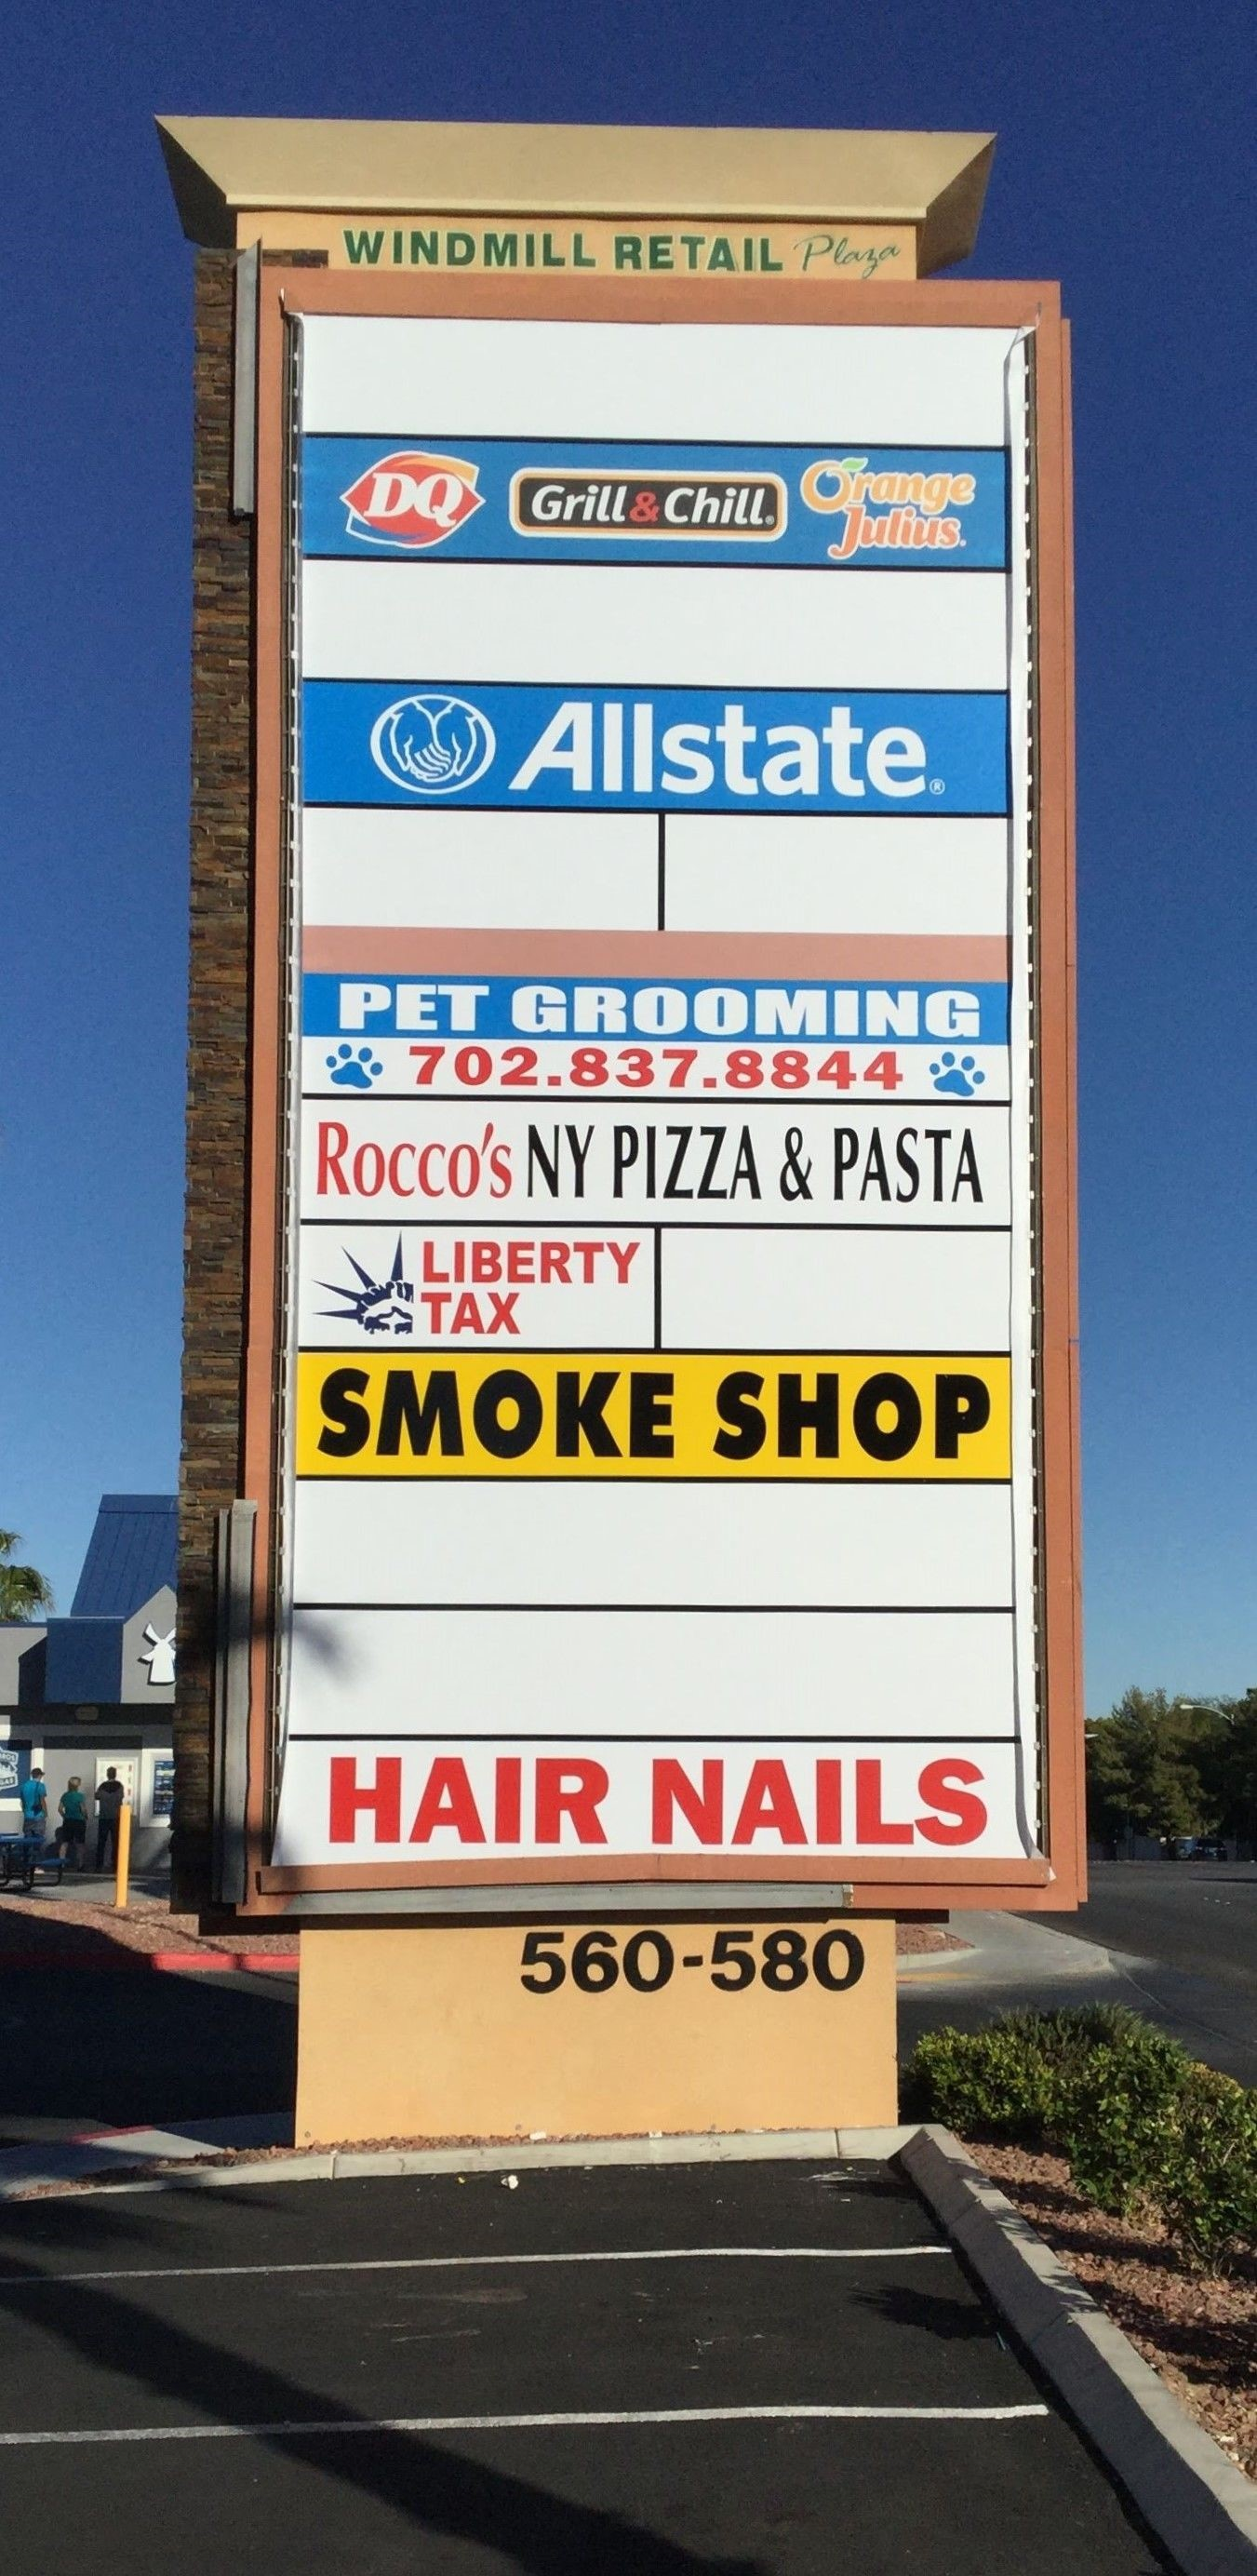 Exterior & Outdoor Signage | Monument Signs | Retail Signs | Las Vegas